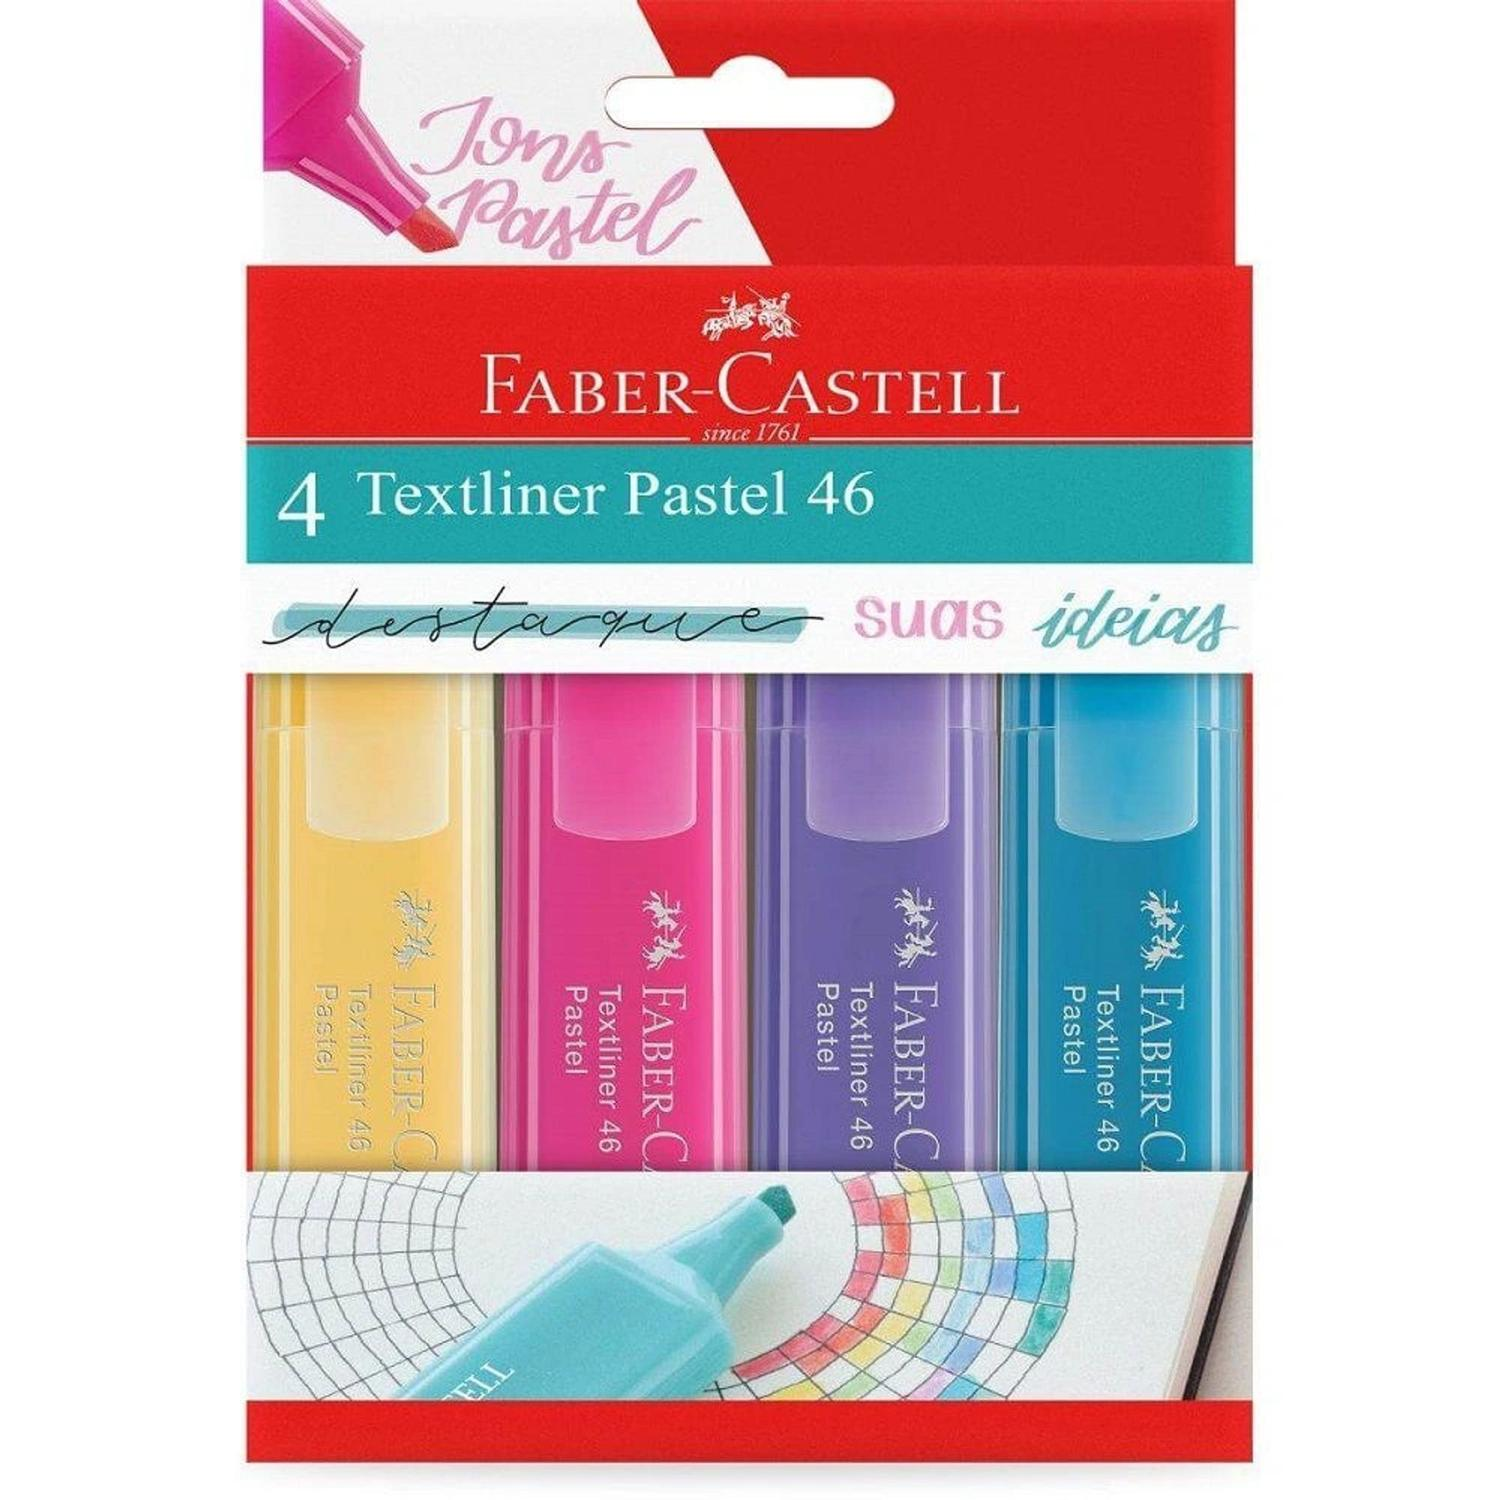 Marca Texto Textliner 46 Pastel Faber Castell Kit c/ 4 Cores